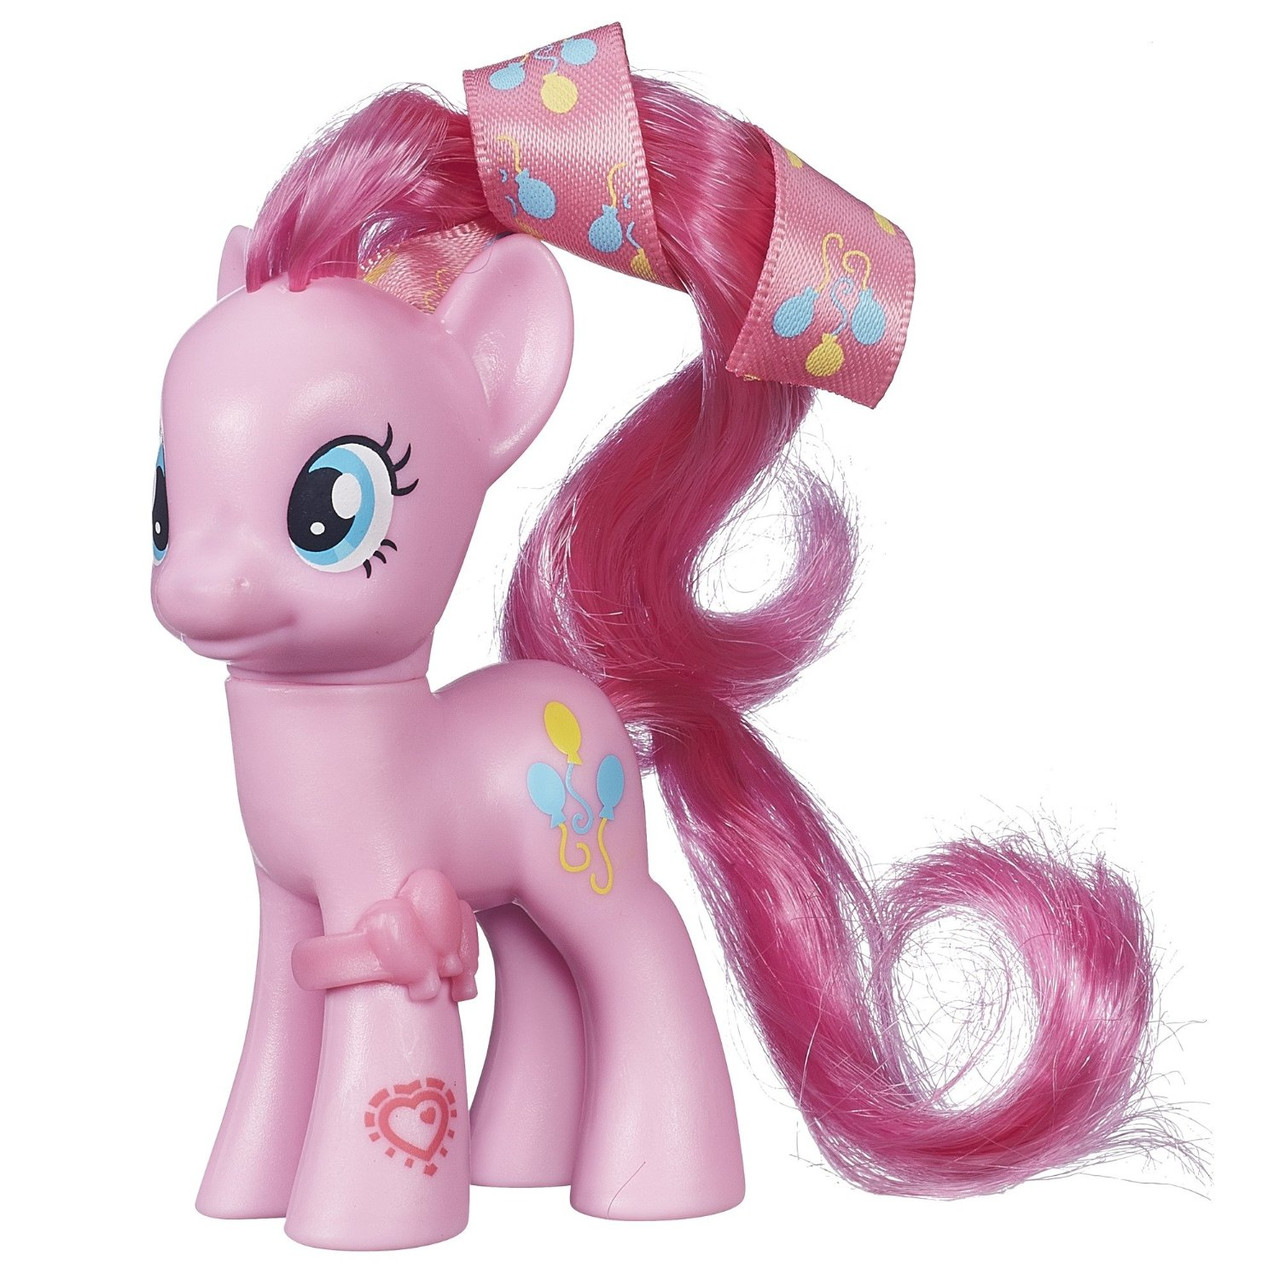 My Little Pony Фигурка пони Пинки Пай (Pinkie Pie), B2147